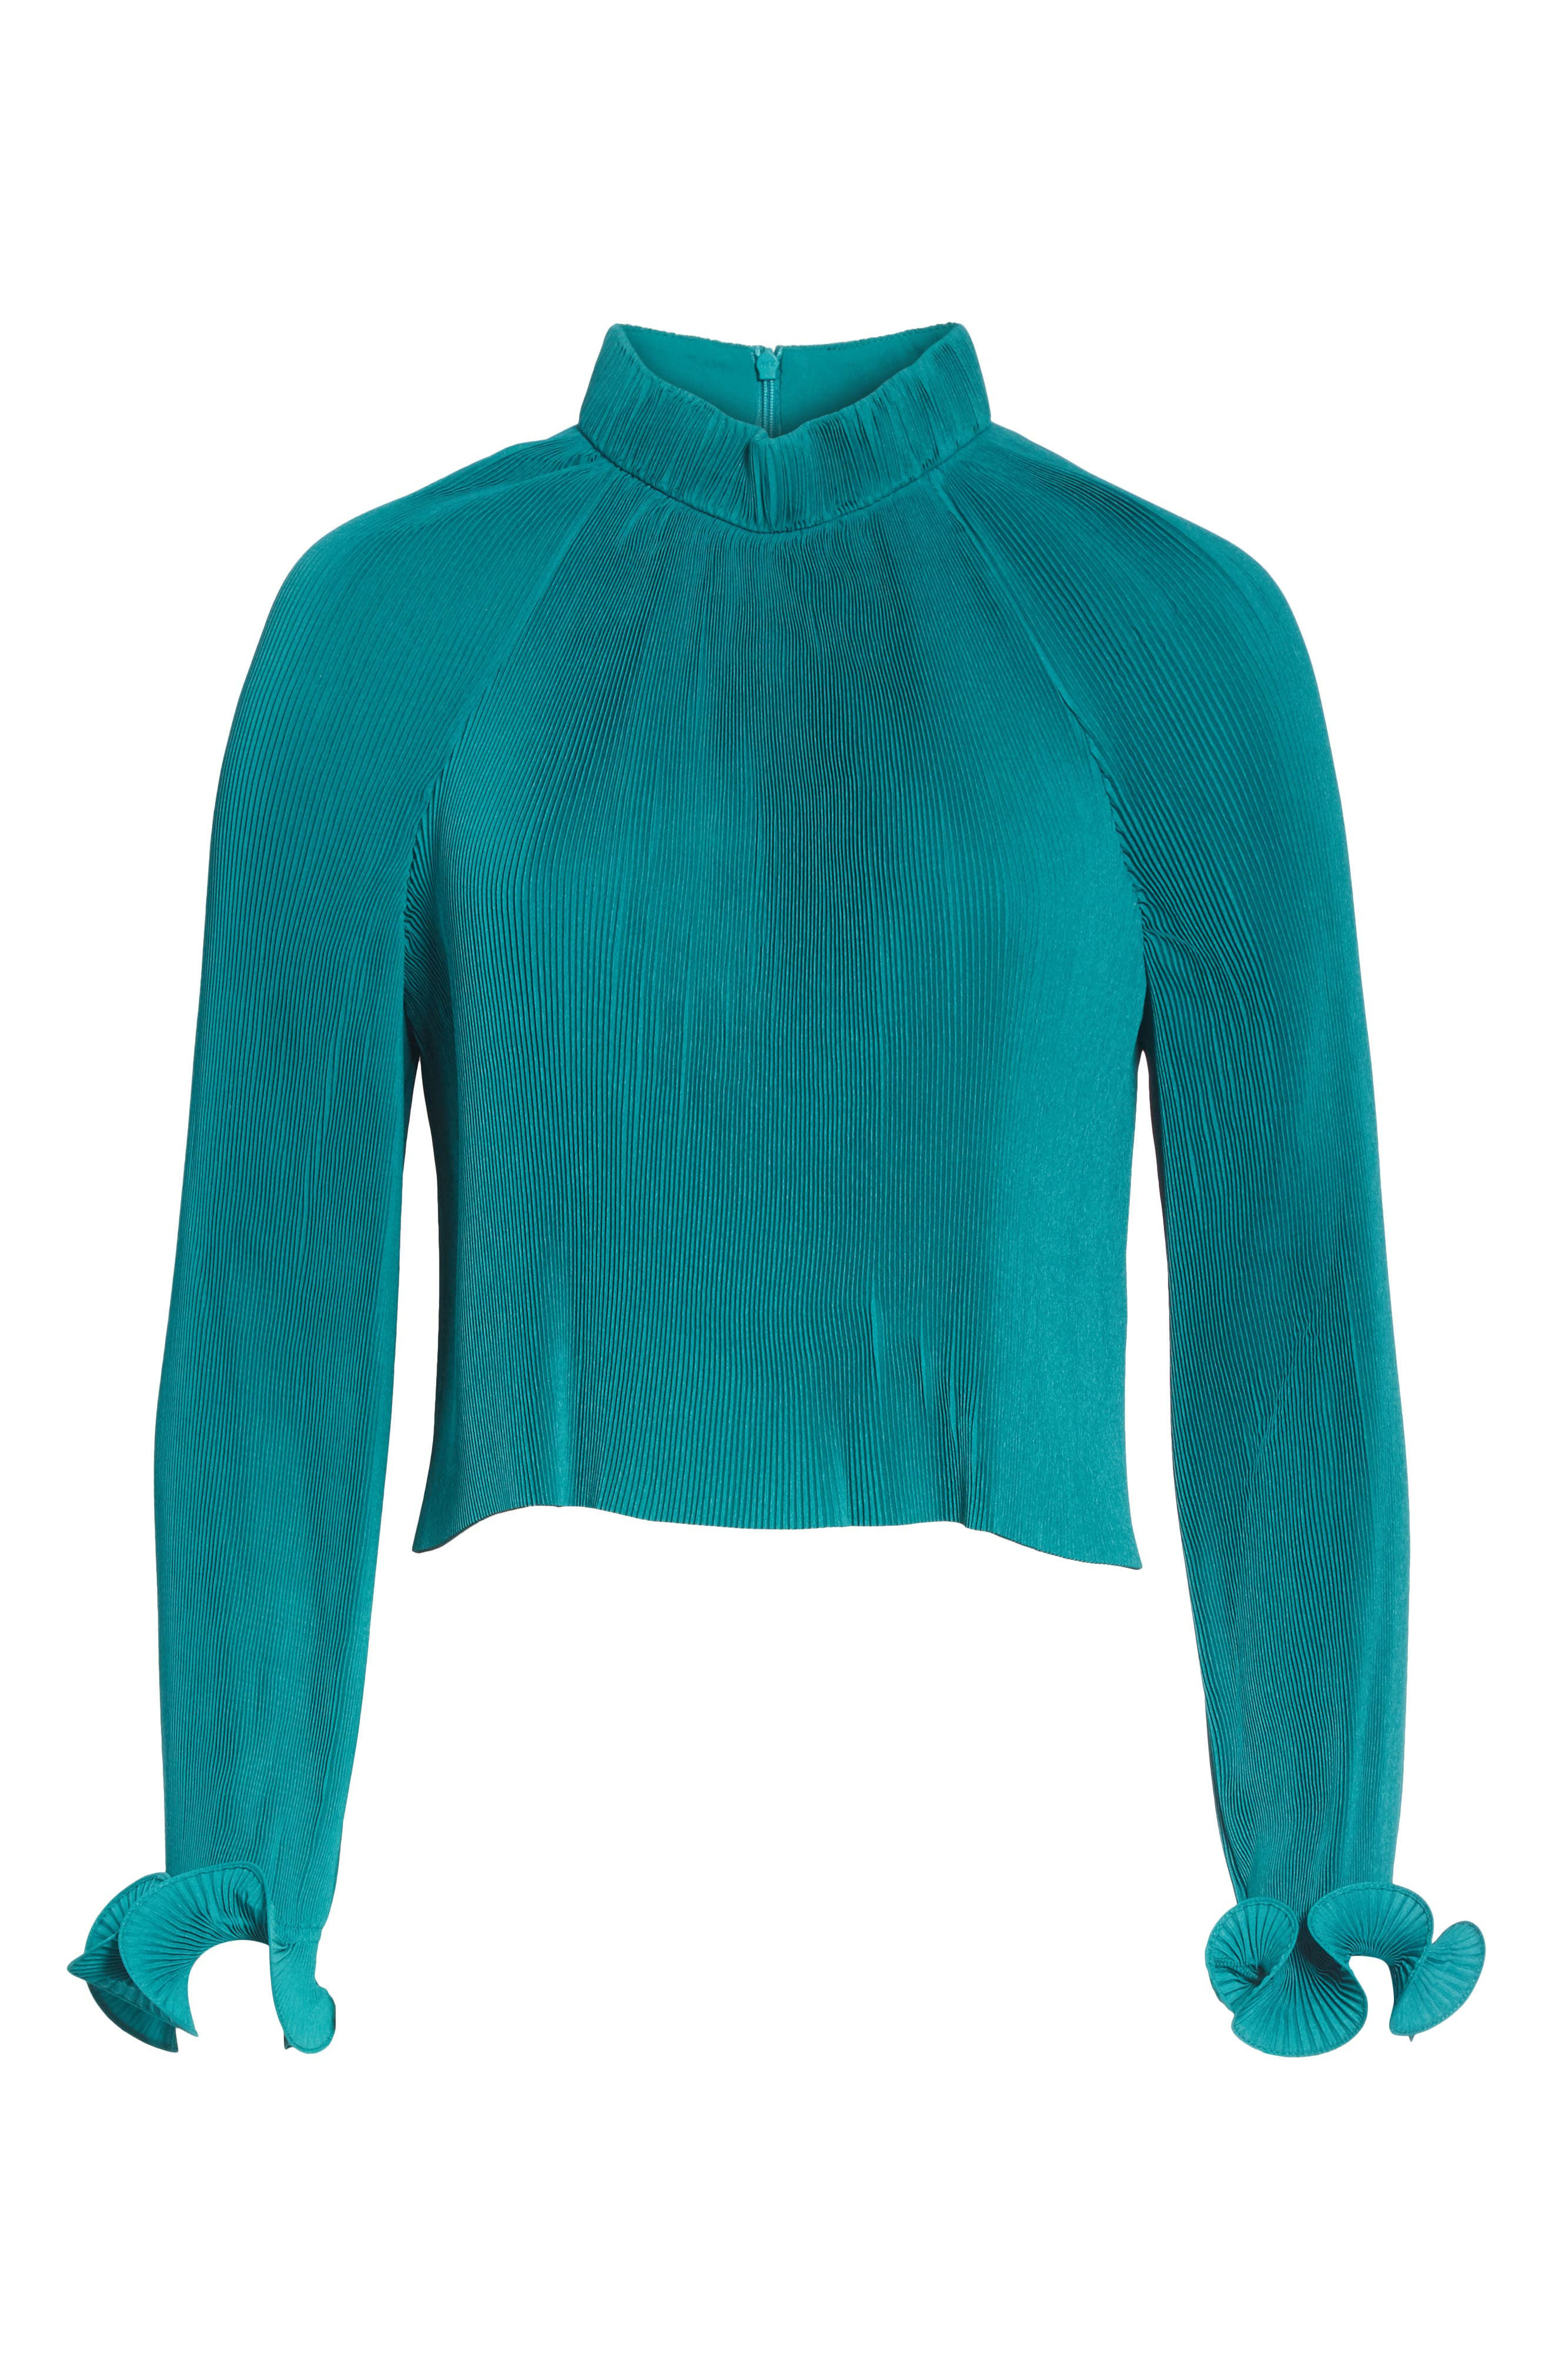 Pleated Crop Top,                             Alternate thumbnail 6, color,                             301